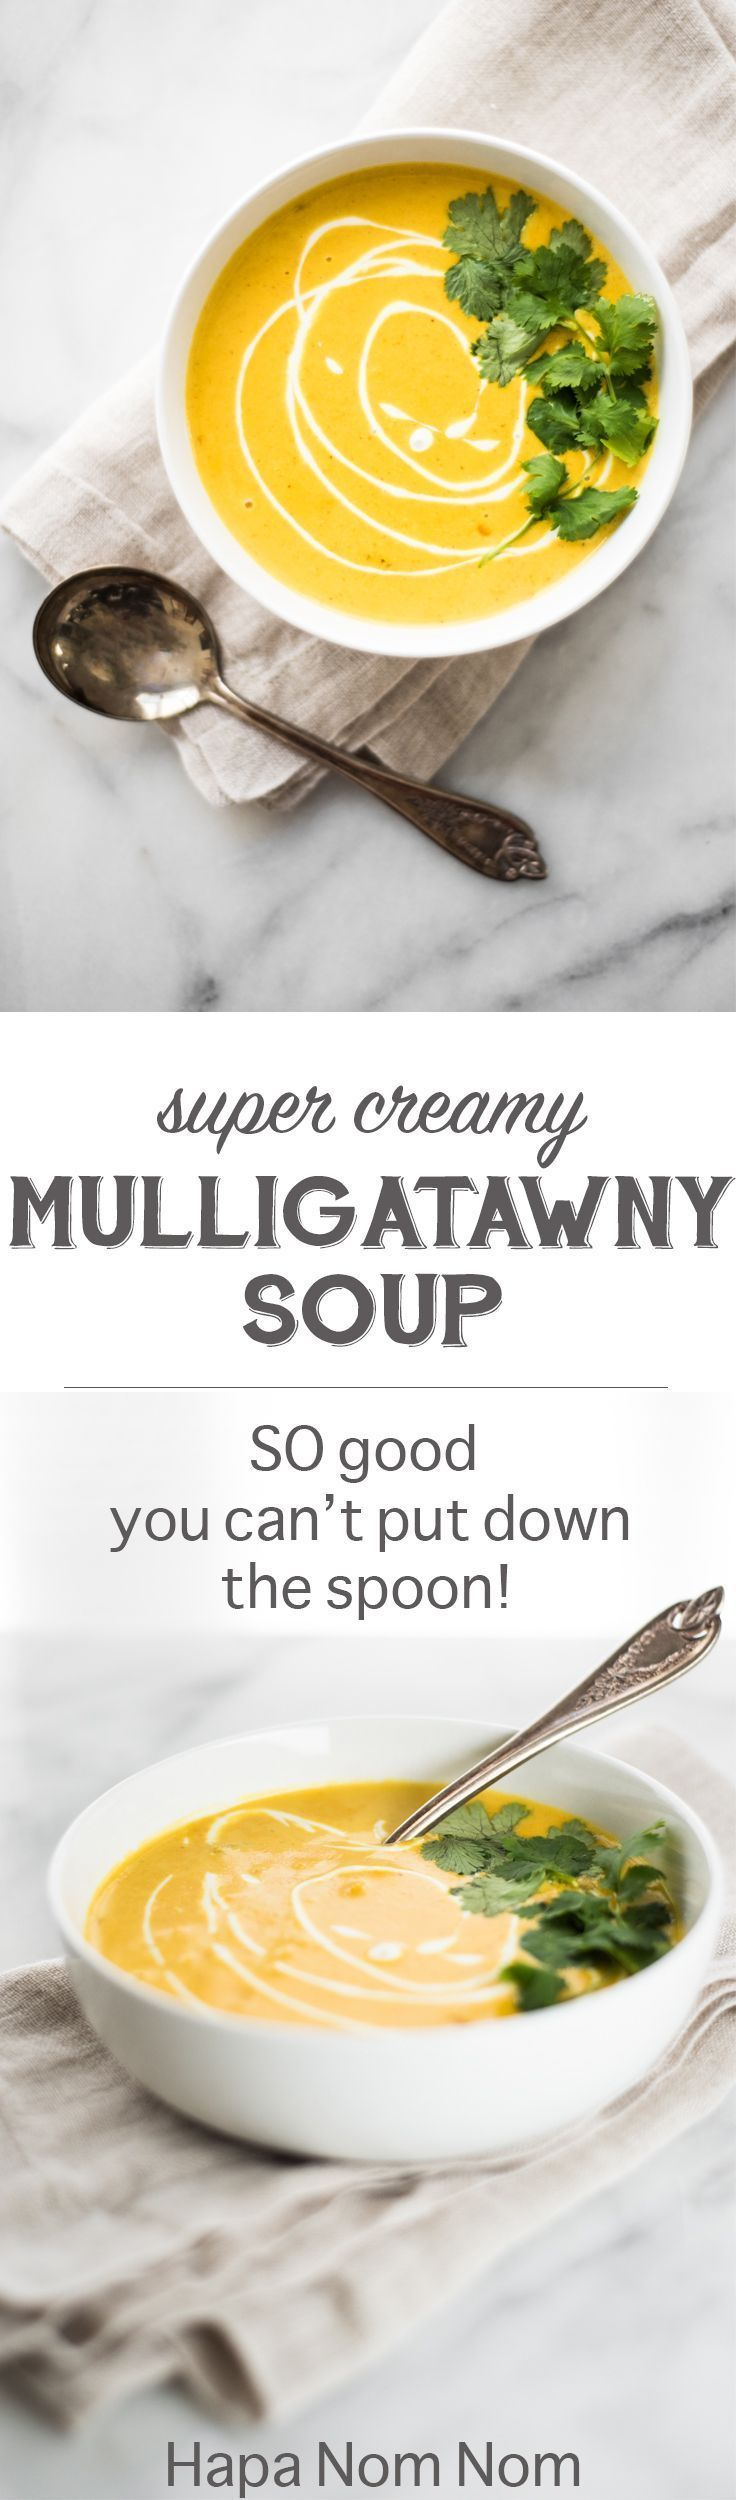 Super Creamy Mulligatawny Soup #mulligatawnysoup This Super Creamy Mulligatawny Soup is going to ROCK your world! It's so rich, so creamy, so good, that I was literally spooning molten hot soup into my mouth before it even had time to cool down! #mulligatawnysoup Super Creamy Mulligatawny Soup #mulligatawnysoup This Super Creamy Mulligatawny Soup is going to ROCK your world! It's so rich, so creamy, so good, that I was literally spooning molten hot soup into my mouth before it even had time to c #mulligatawnysoup